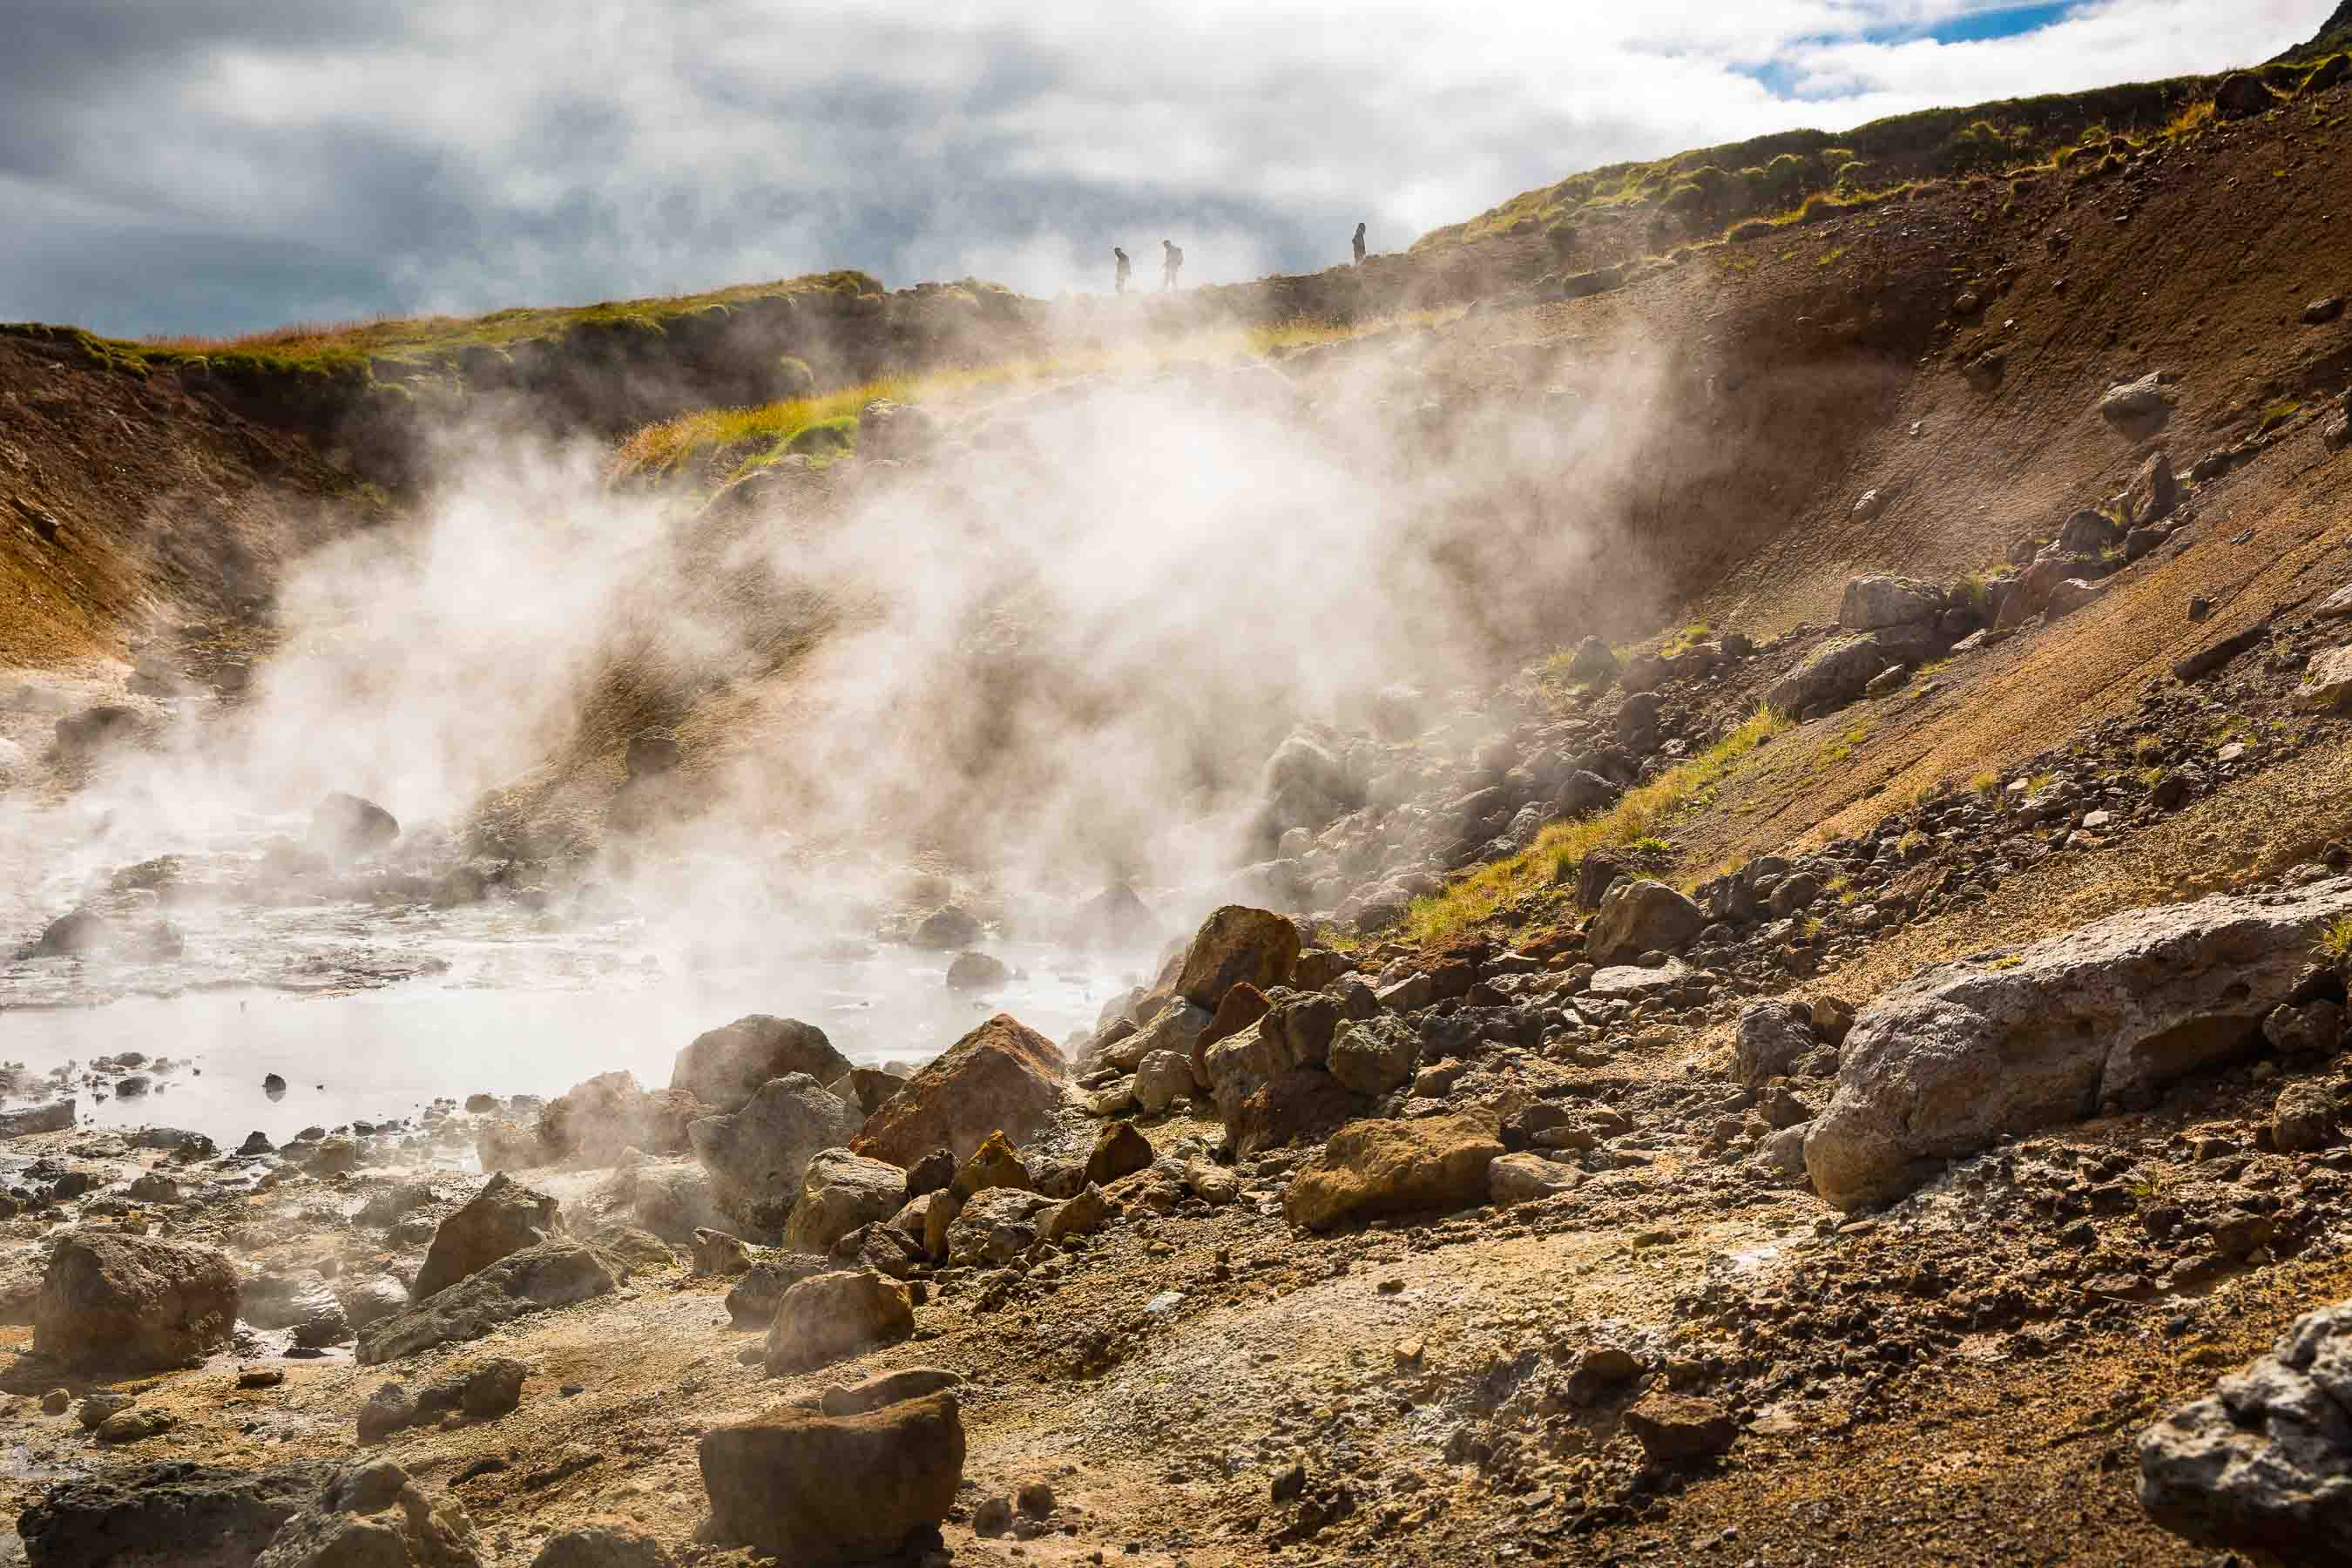 Hiking at Seltún, a geothermal area in Iceland